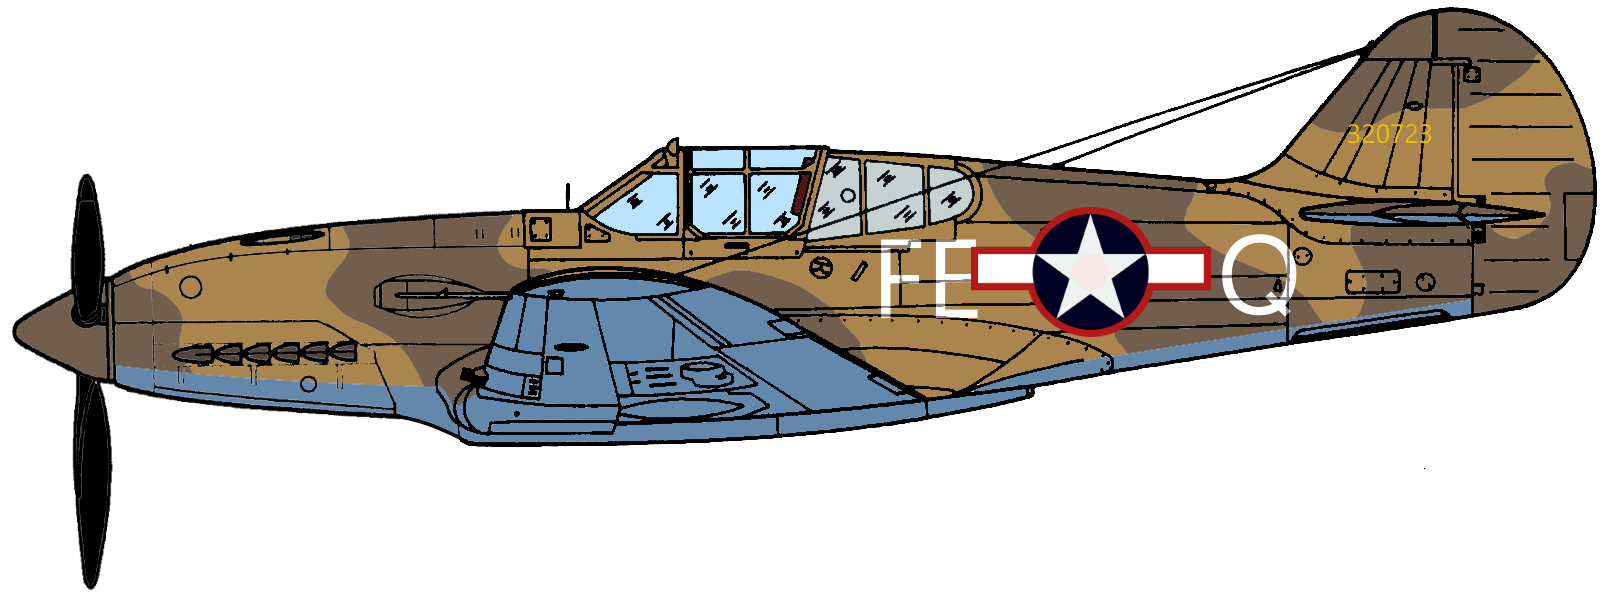 P-27 (Late).png